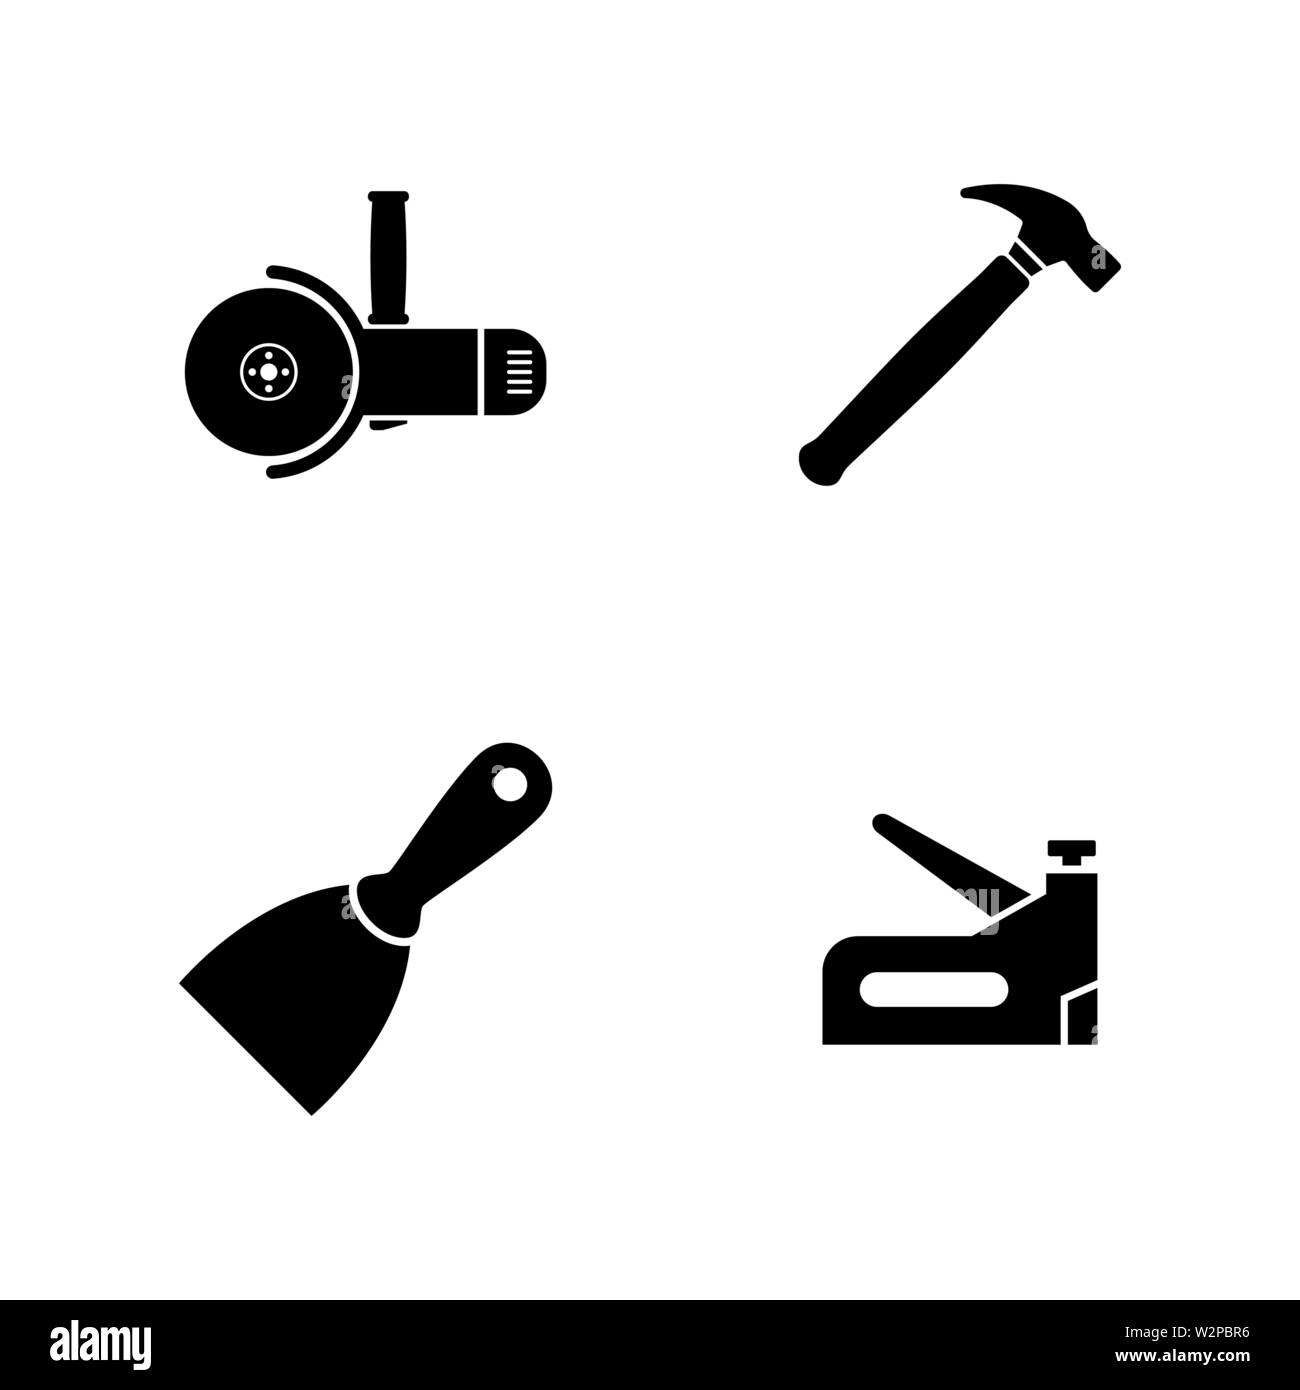 Construction Working Tools. Simple Related Vector Icons Set for Video, Mobile Apps, Web Sites, Print Projects and Your Design. Black Flat Illustration - Stock Vector